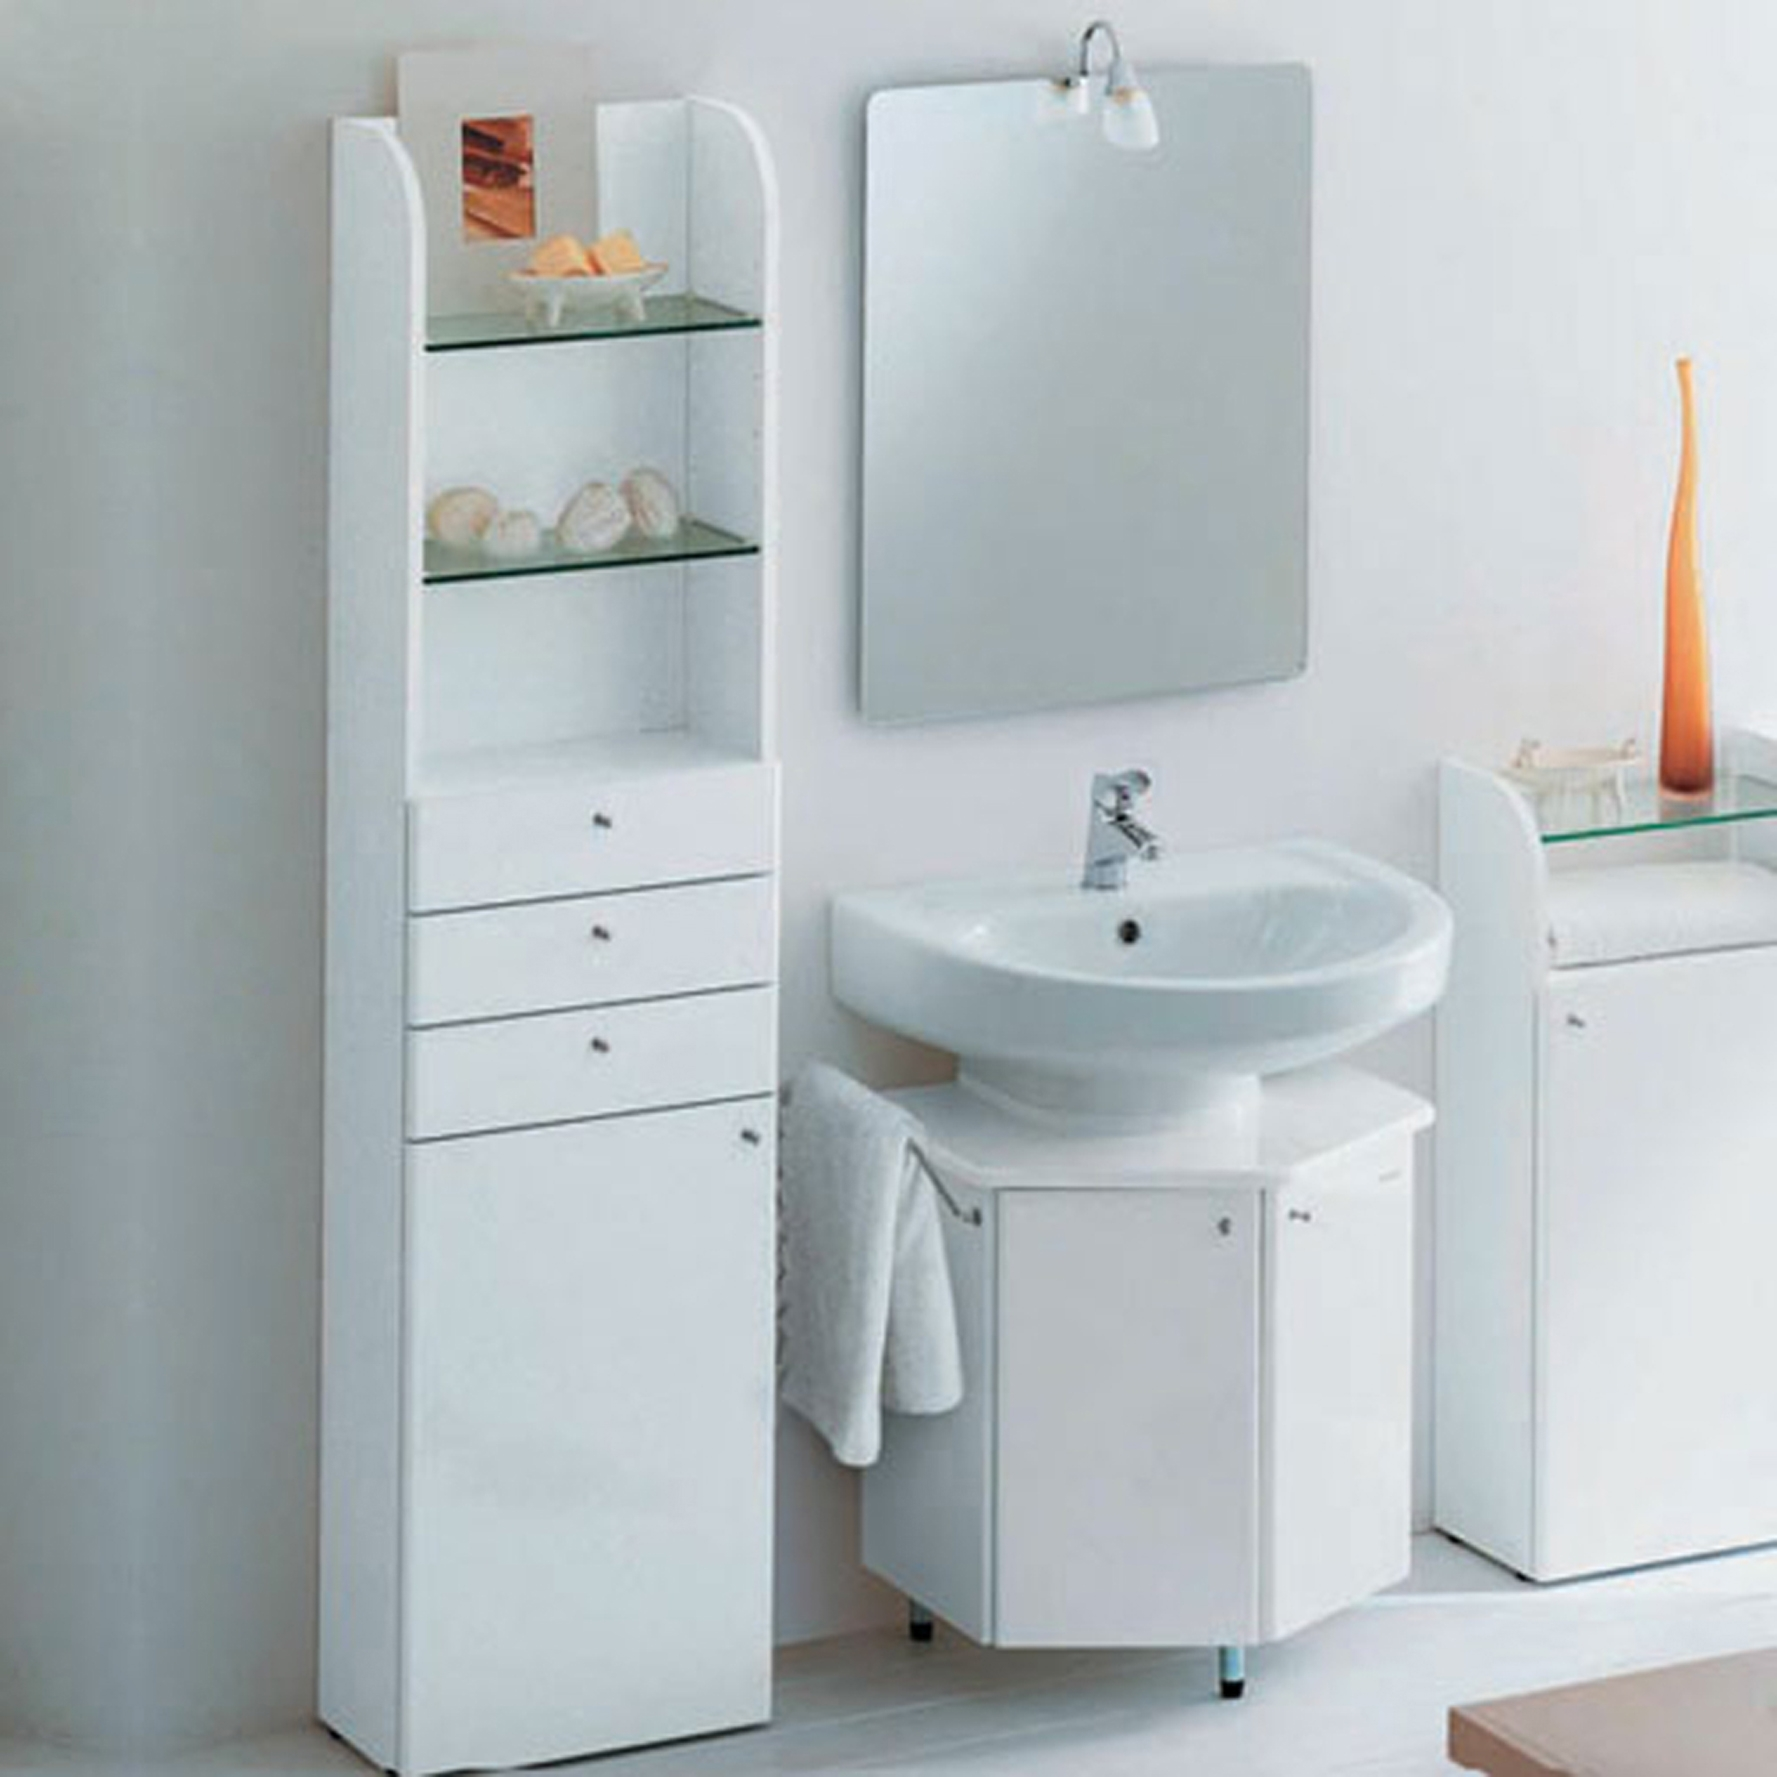 Permalink to Small Bathroom Cabinets For Storage